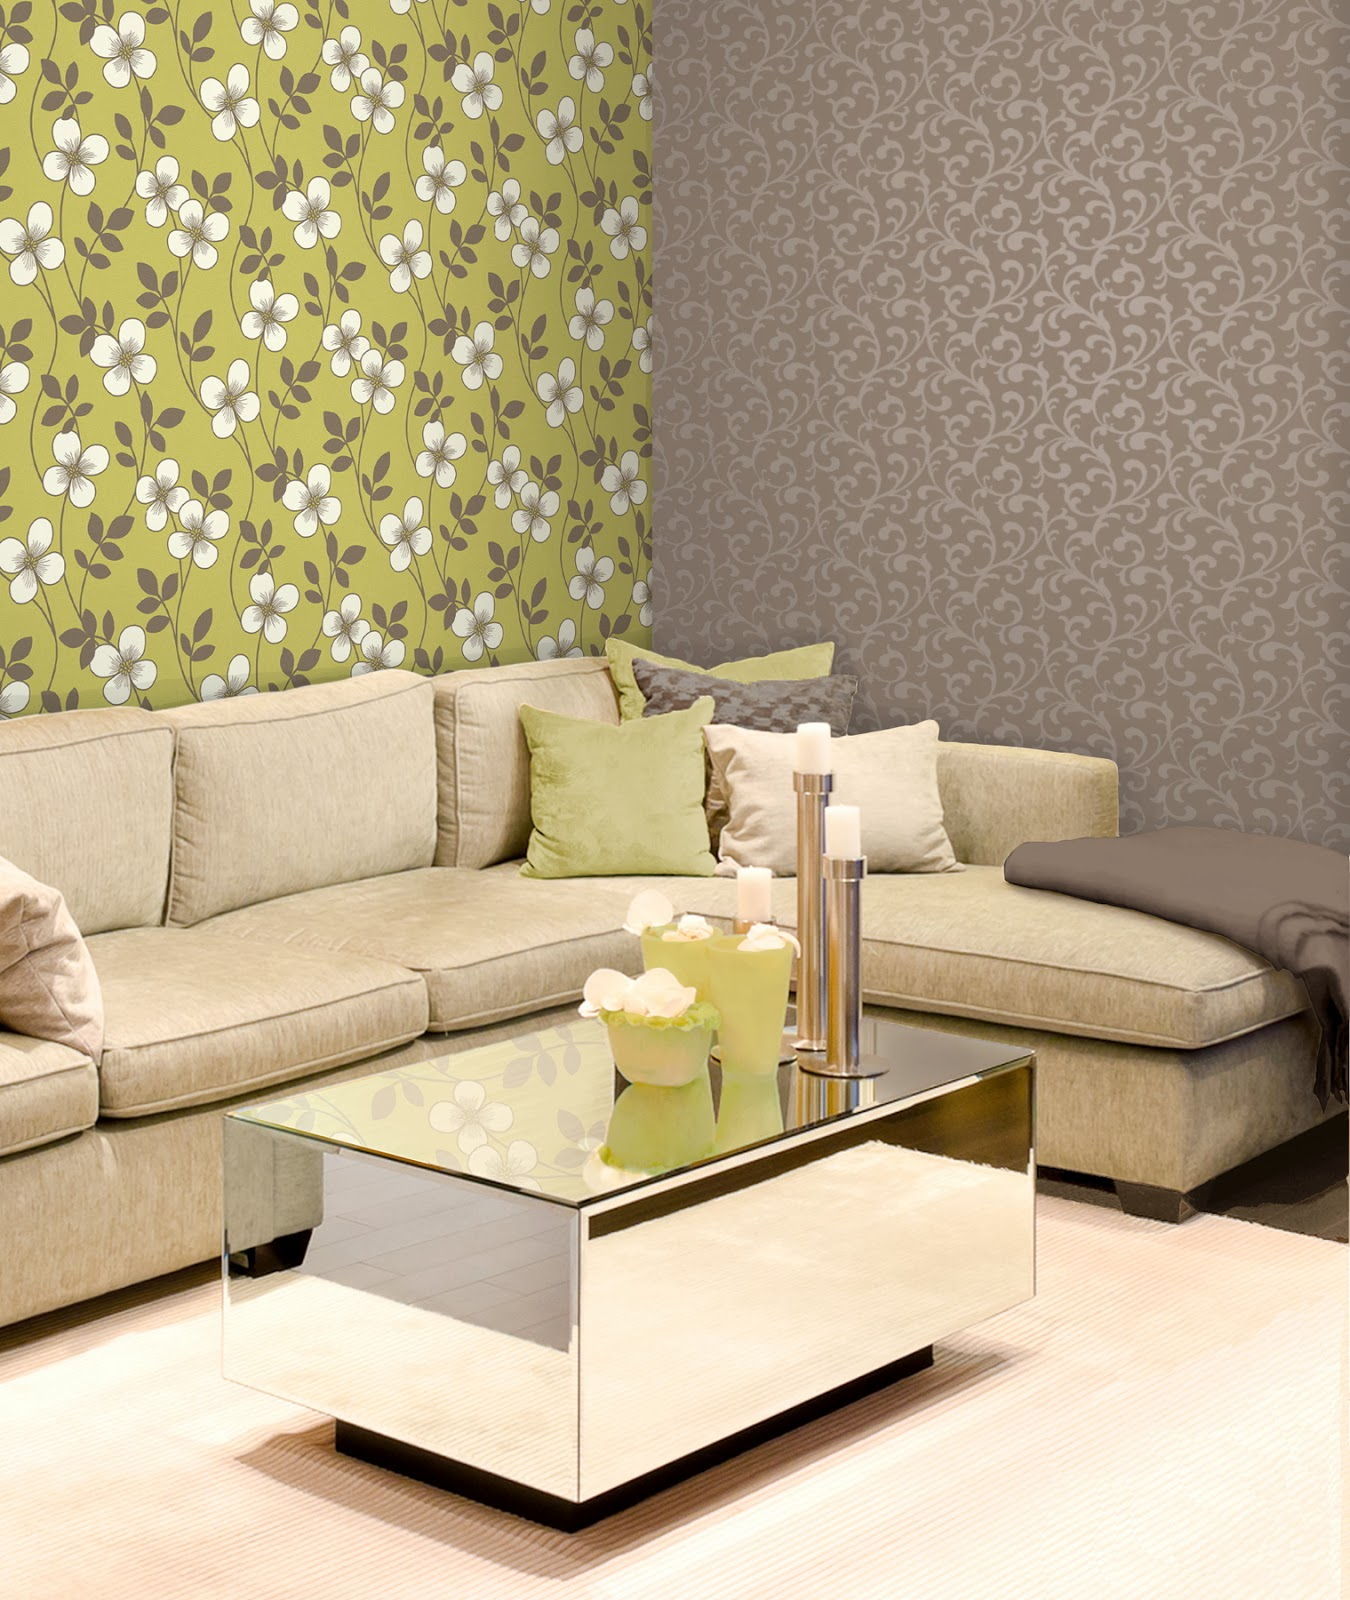 https://www.wallcoveringsforless.com/shoppingcart/prodlist1.CFM?page=_prod_detail.cfm&product_id=42660&startrow=13&search=2533&pagereturn=_search.cfm